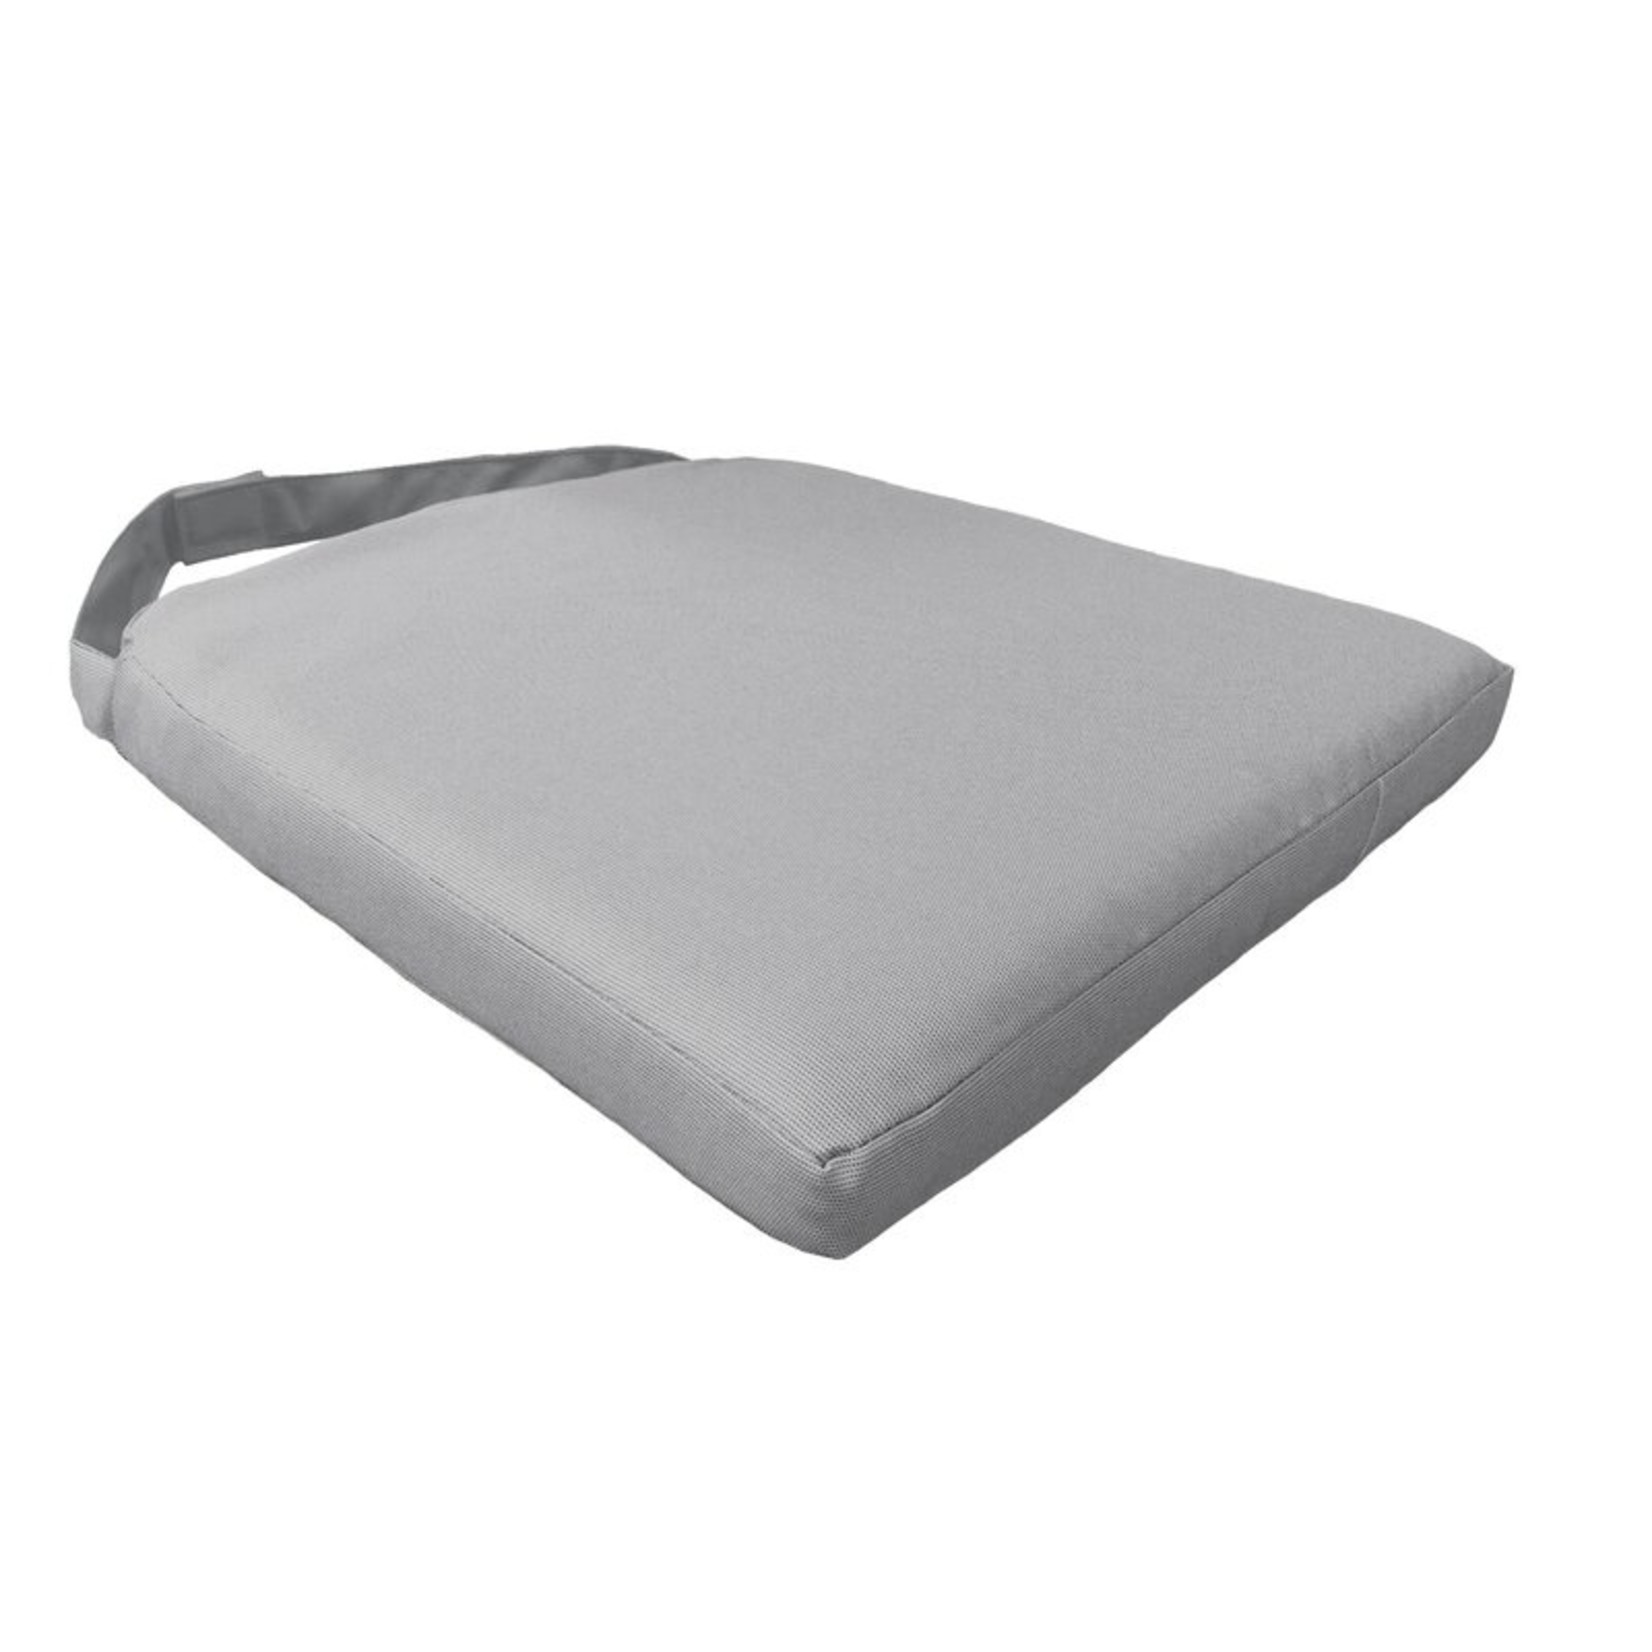 *Outdoor Cushion Cover (Covers Only) - Grey - Set of 2 -  Final Sale